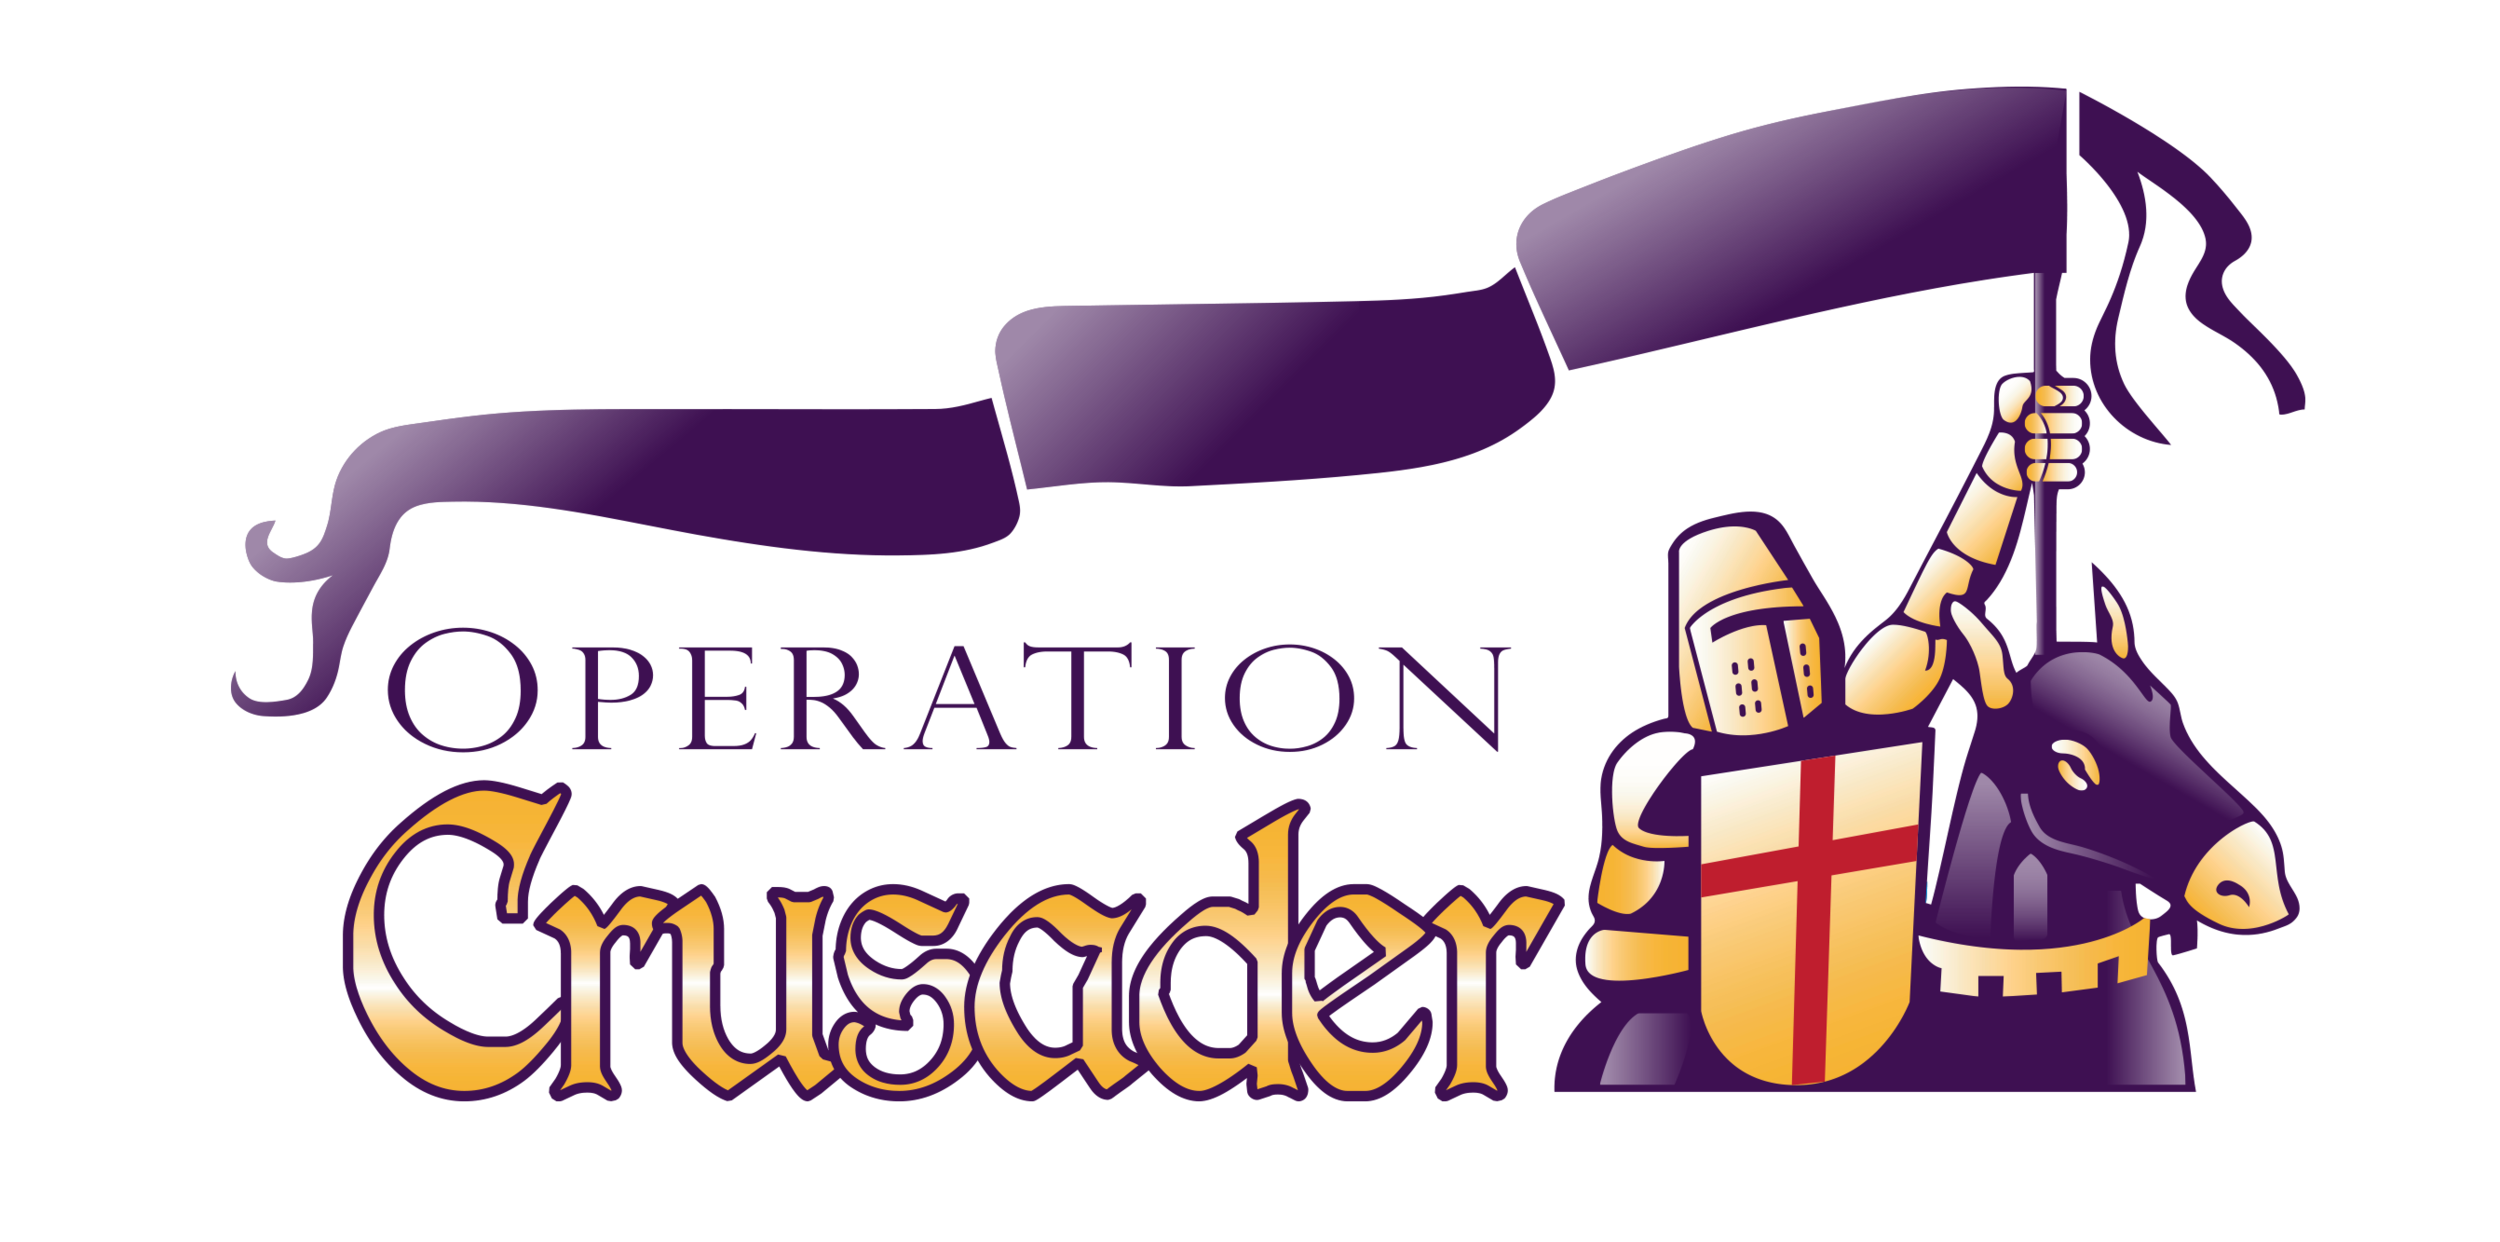 OperationCrusader.png